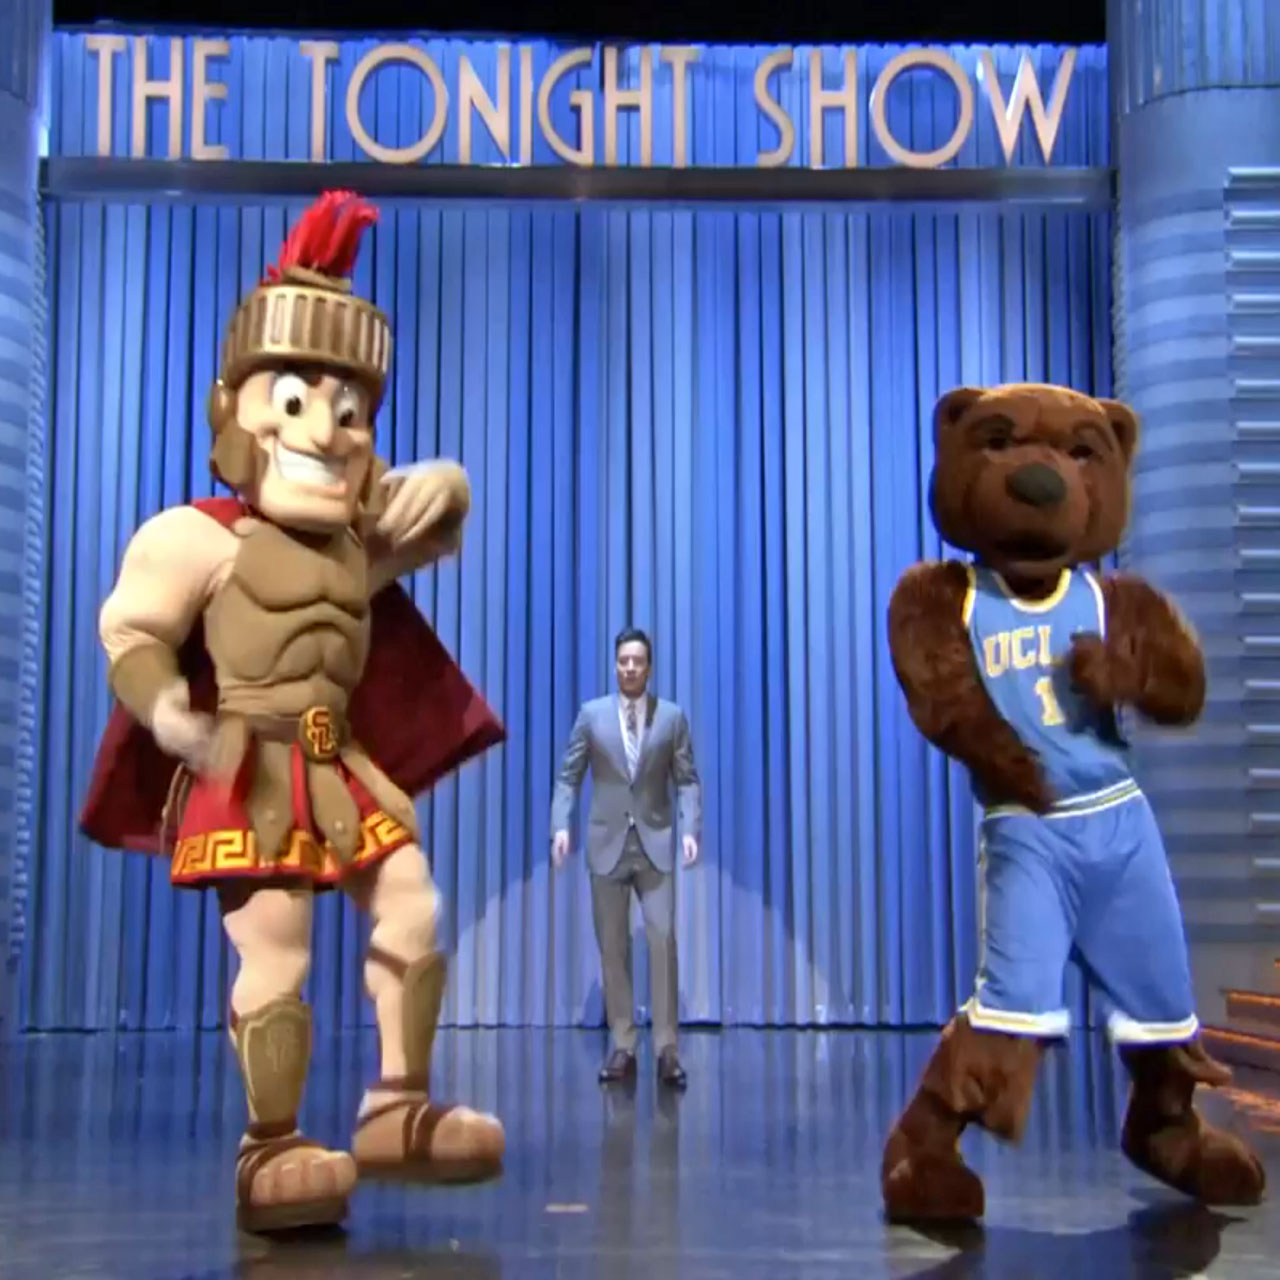 Tonight Show mascot dance-off features Tommy Trojan, Joe Bruin, and Hashtag the Panda